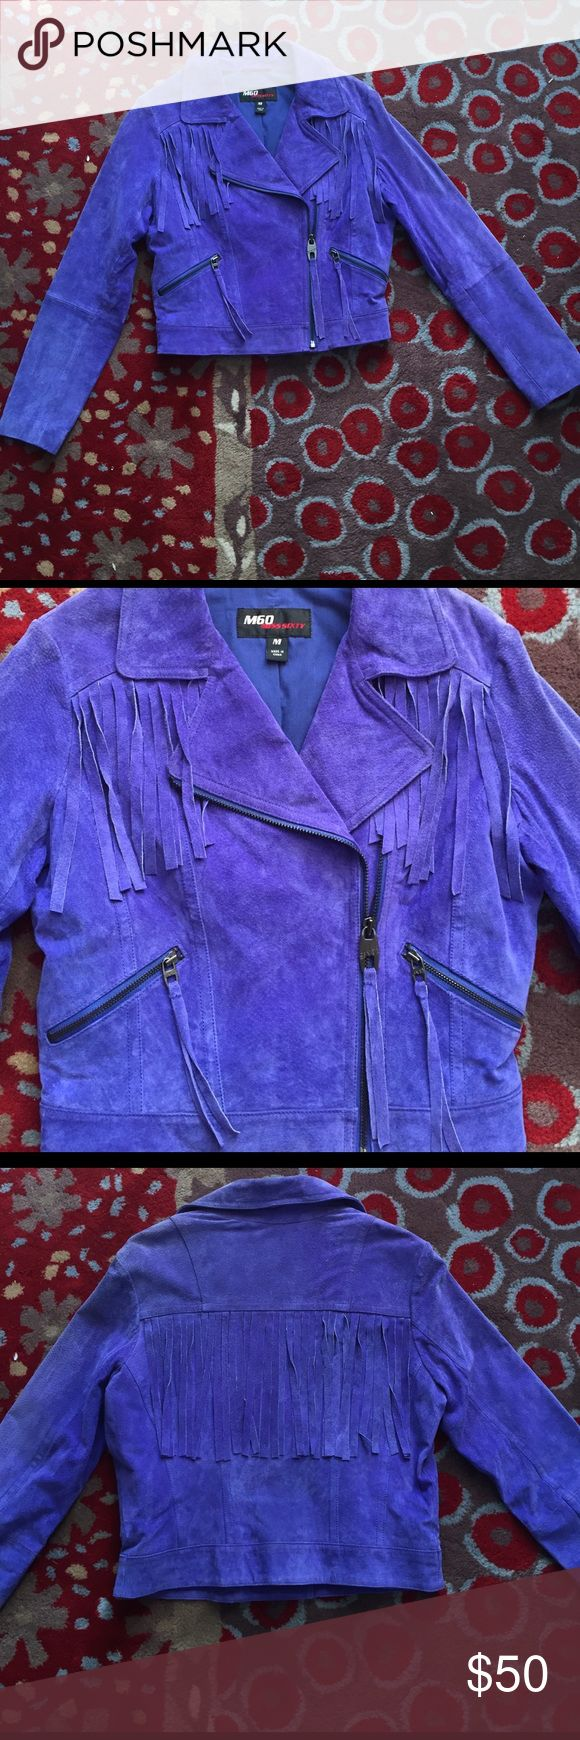 Purple suede fringe Miss Sixty jacket Bright purple suede fringe jacket. Miss Sixty. Size M. Excellent condition. Never worn! Miss Sixty Jackets & Coats